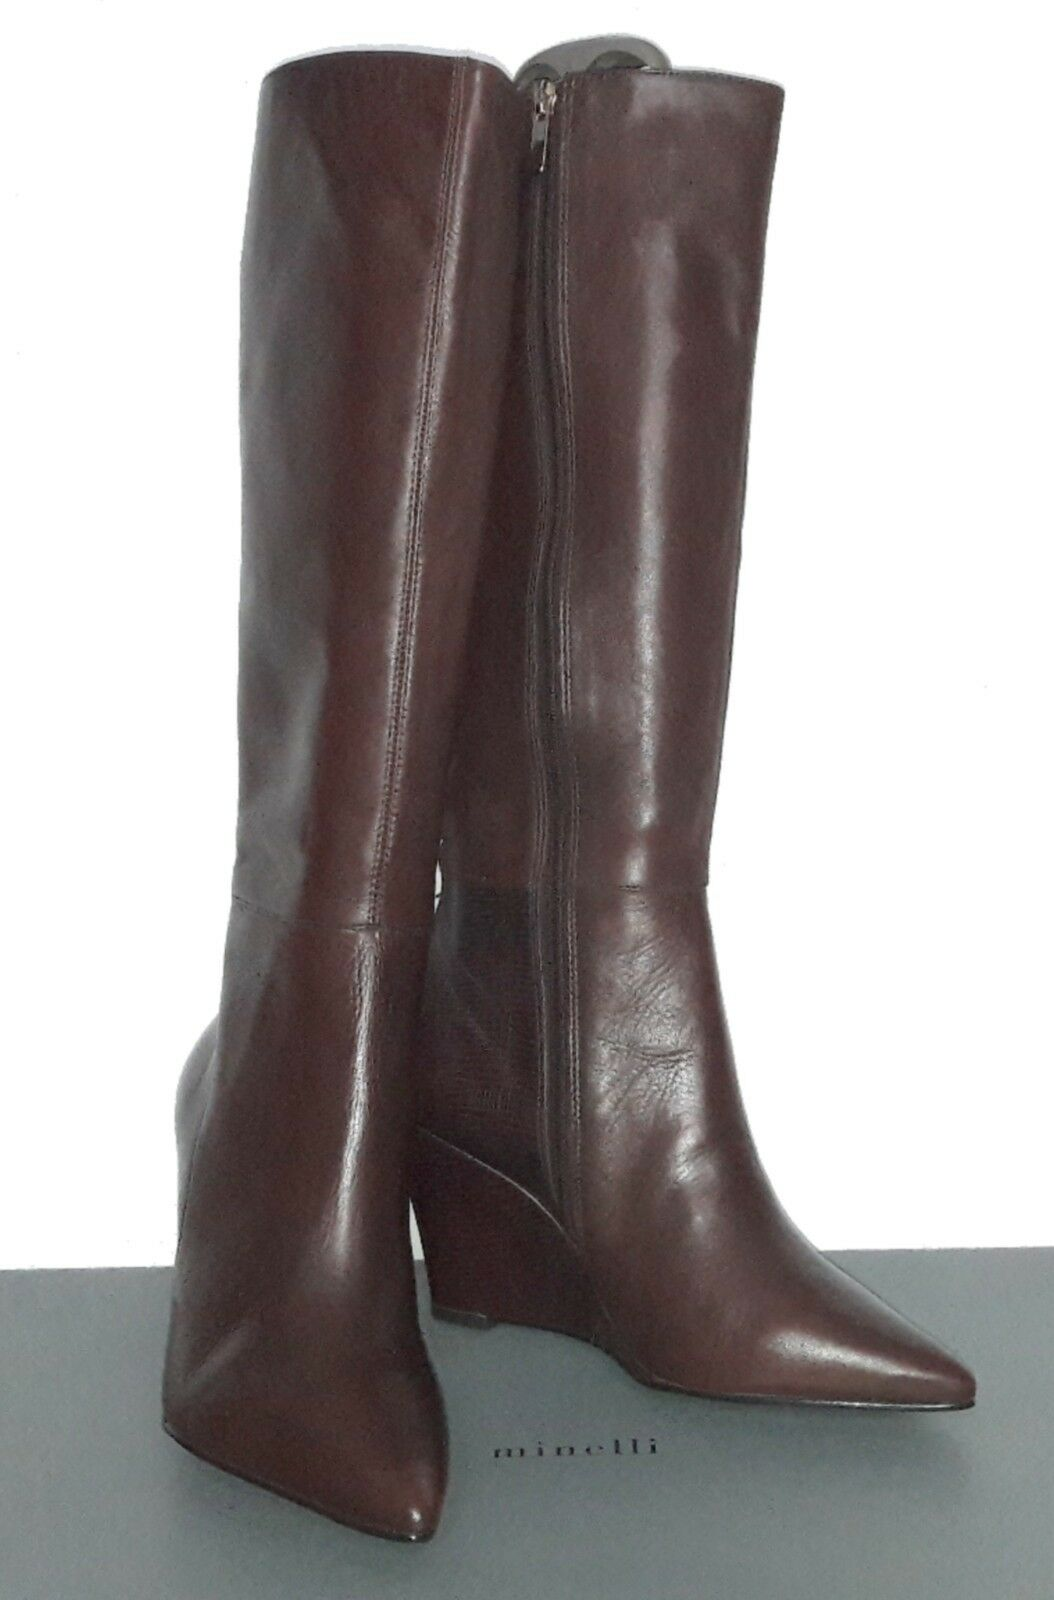 Bottes cuir chataigne MINELLI Taille 39 uk 5.5 us 7.5